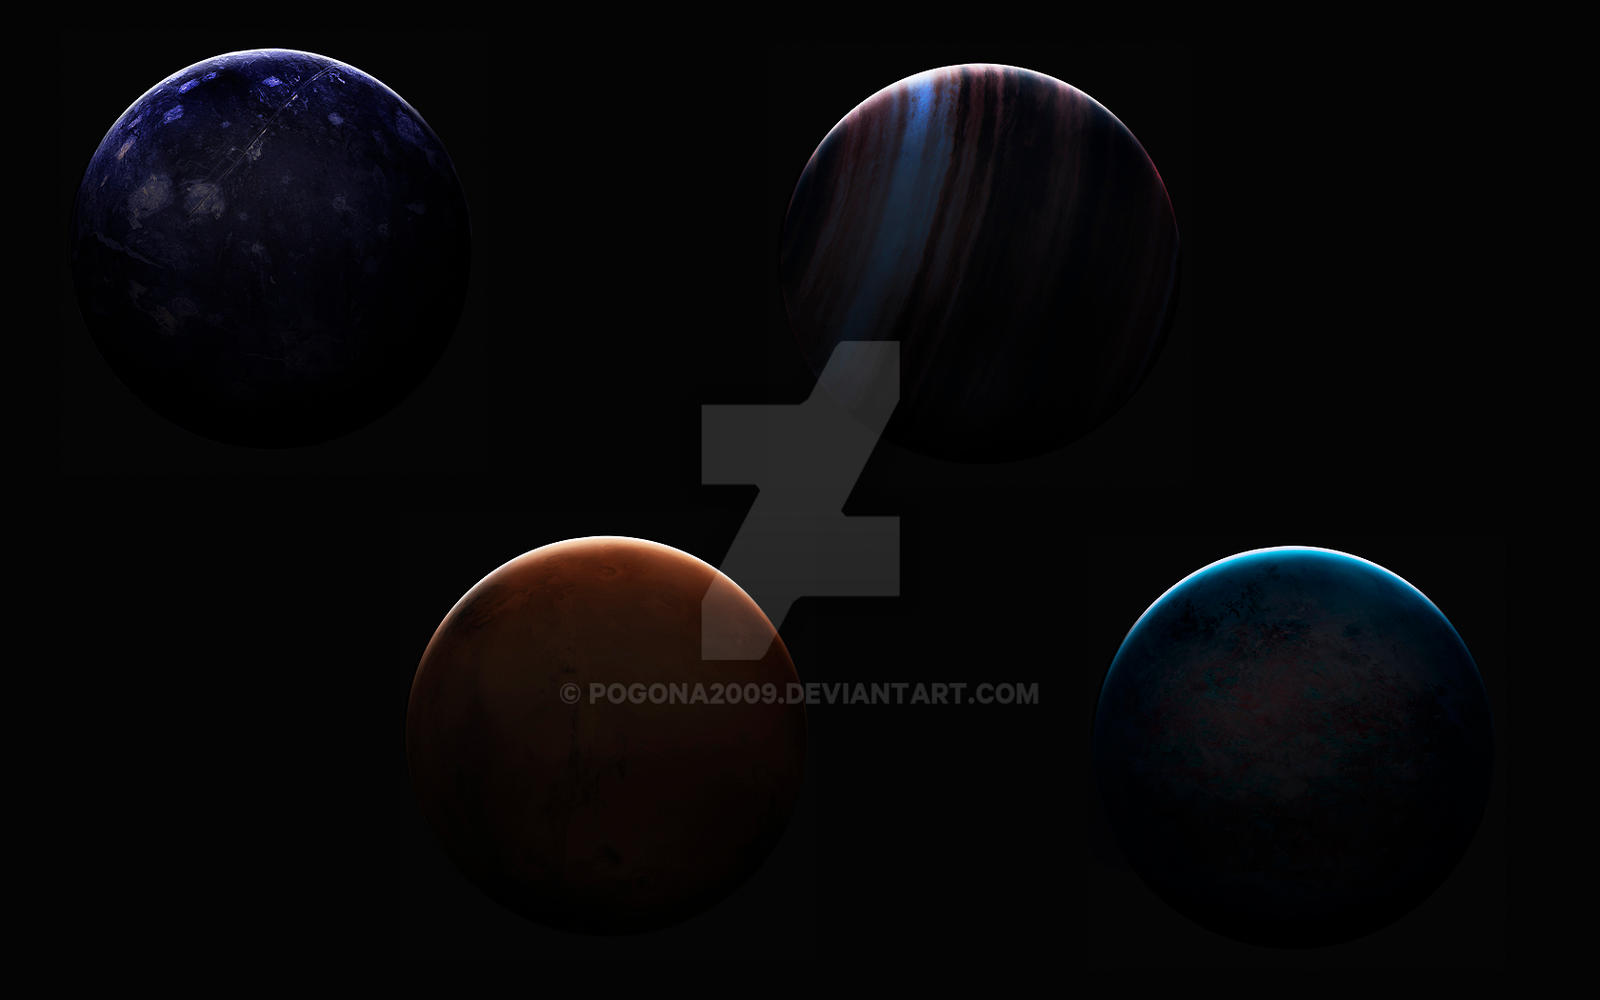 Awesome planets by pogona2009